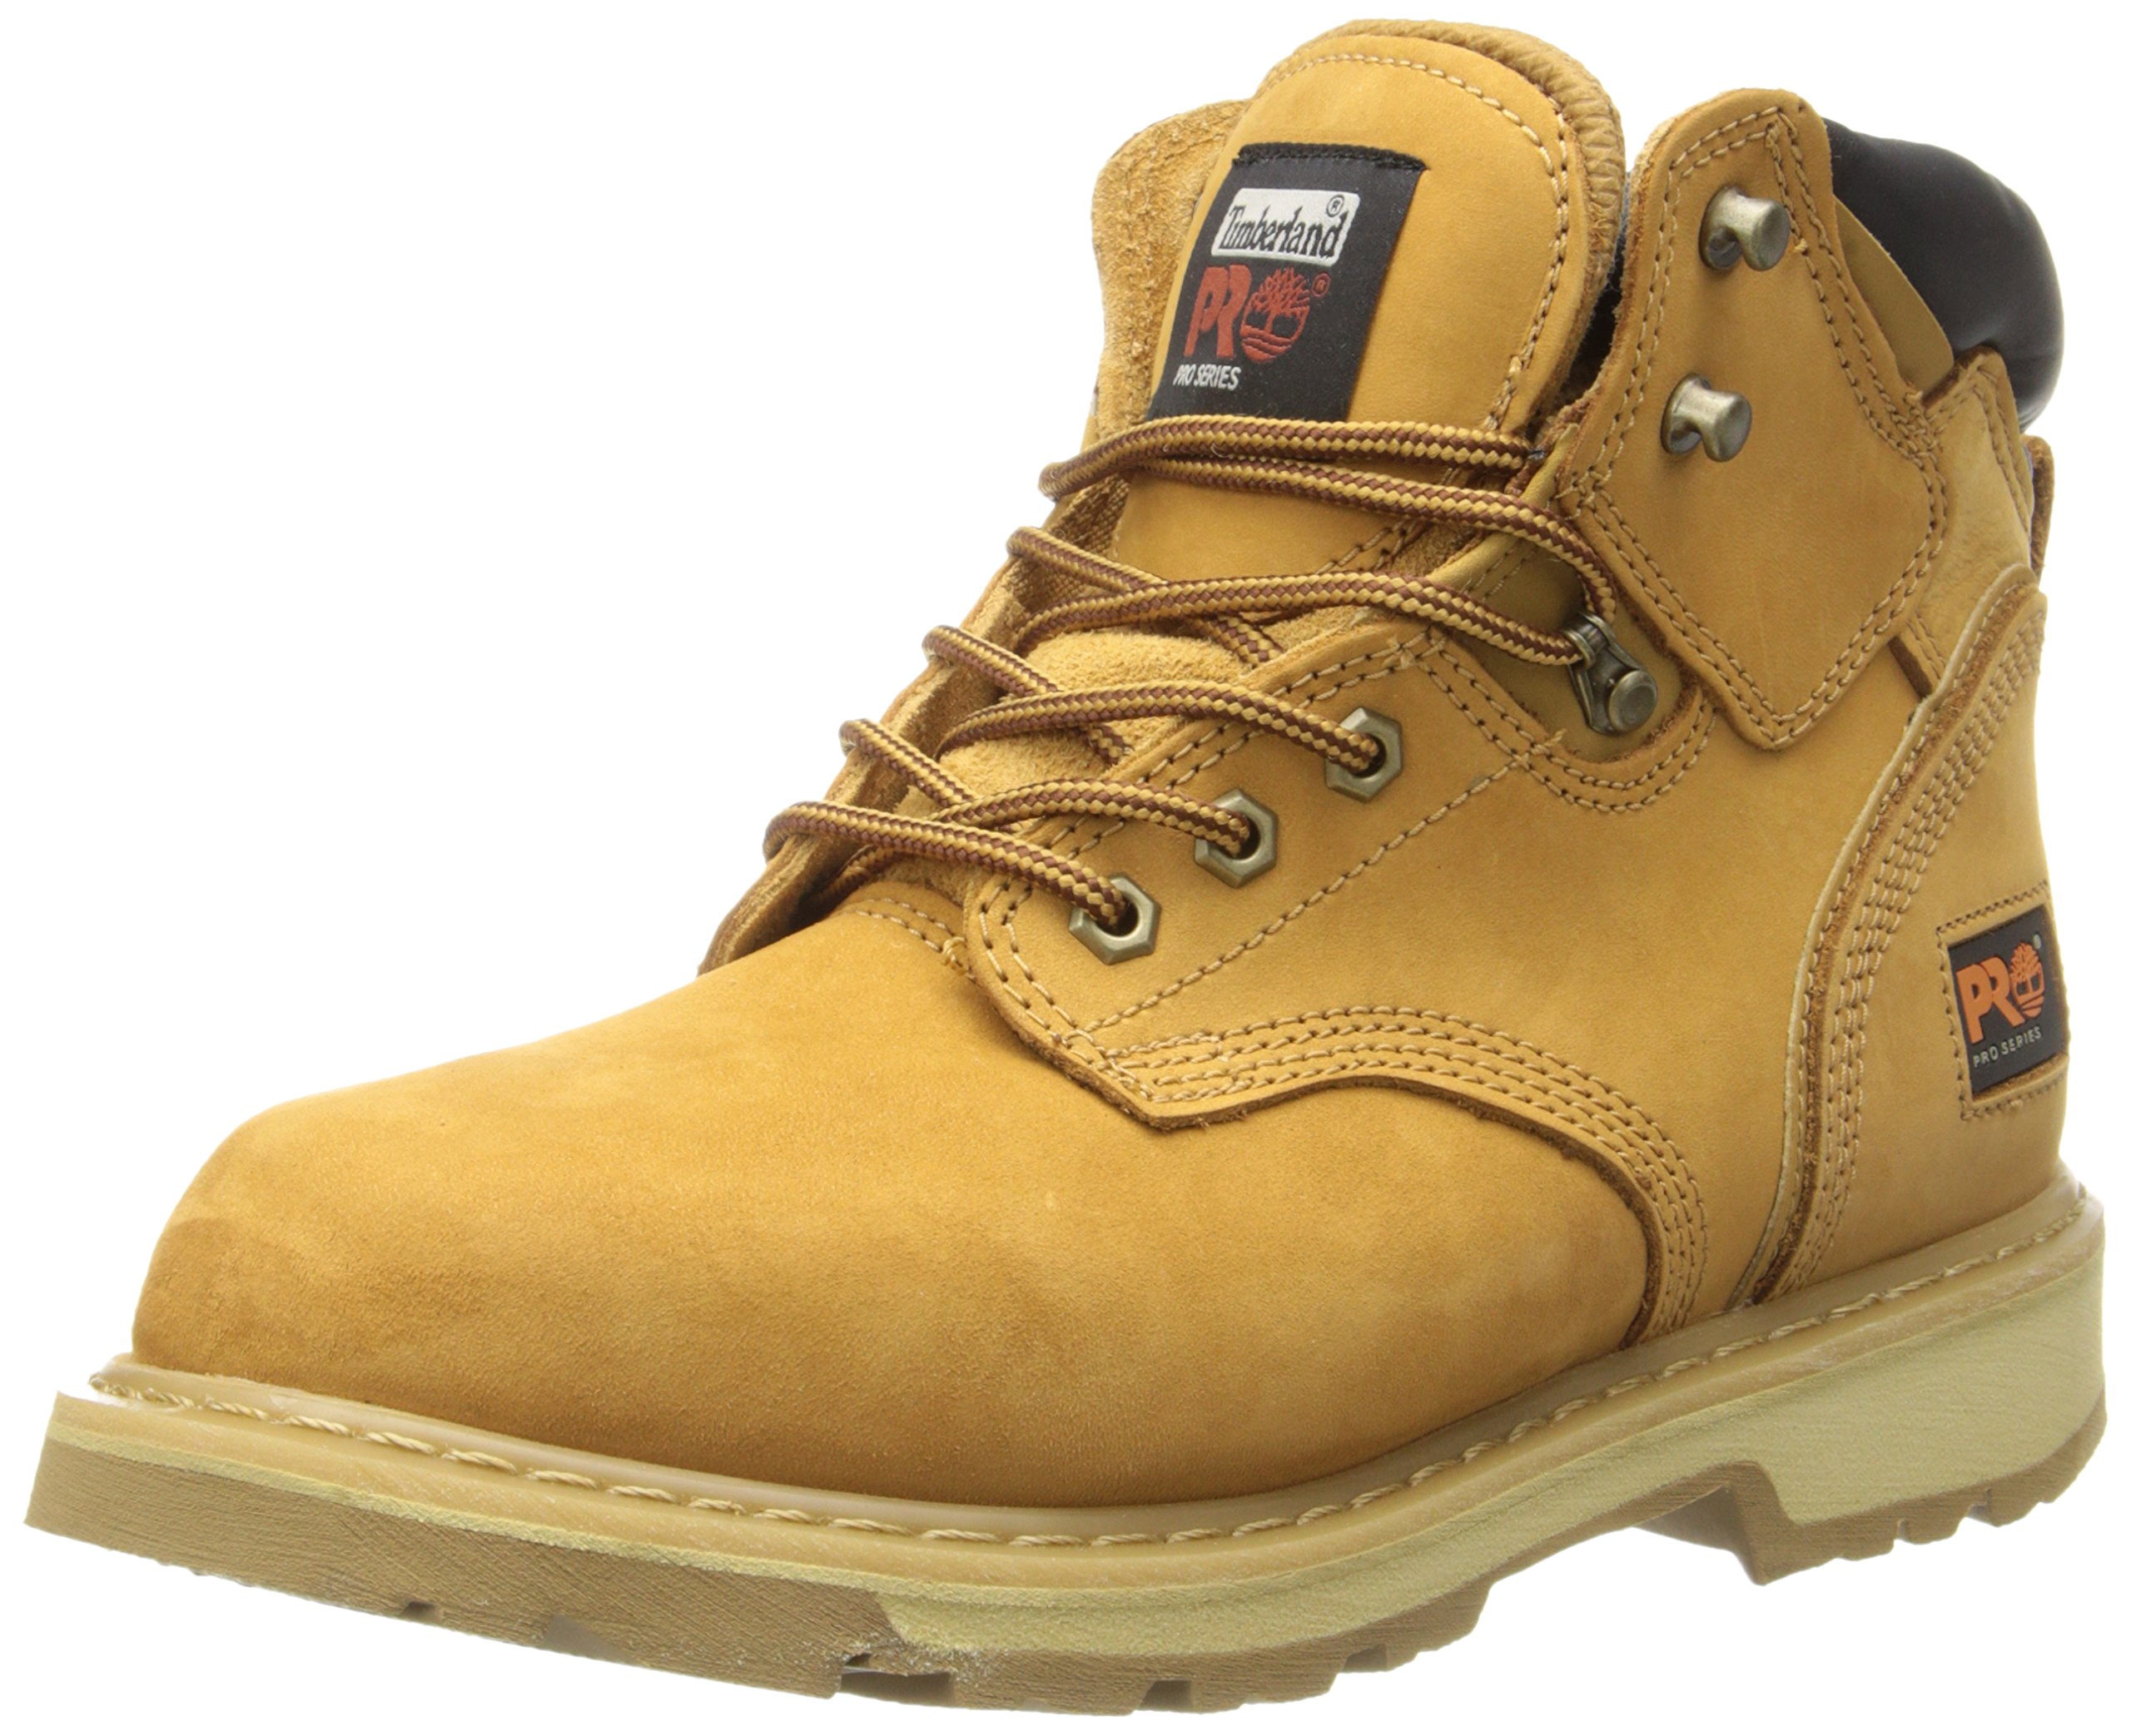 Timberland PRO Men's Pitboss 6'' Soft-Toe Boot, Wheat , 8.5 M by Timberland PRO